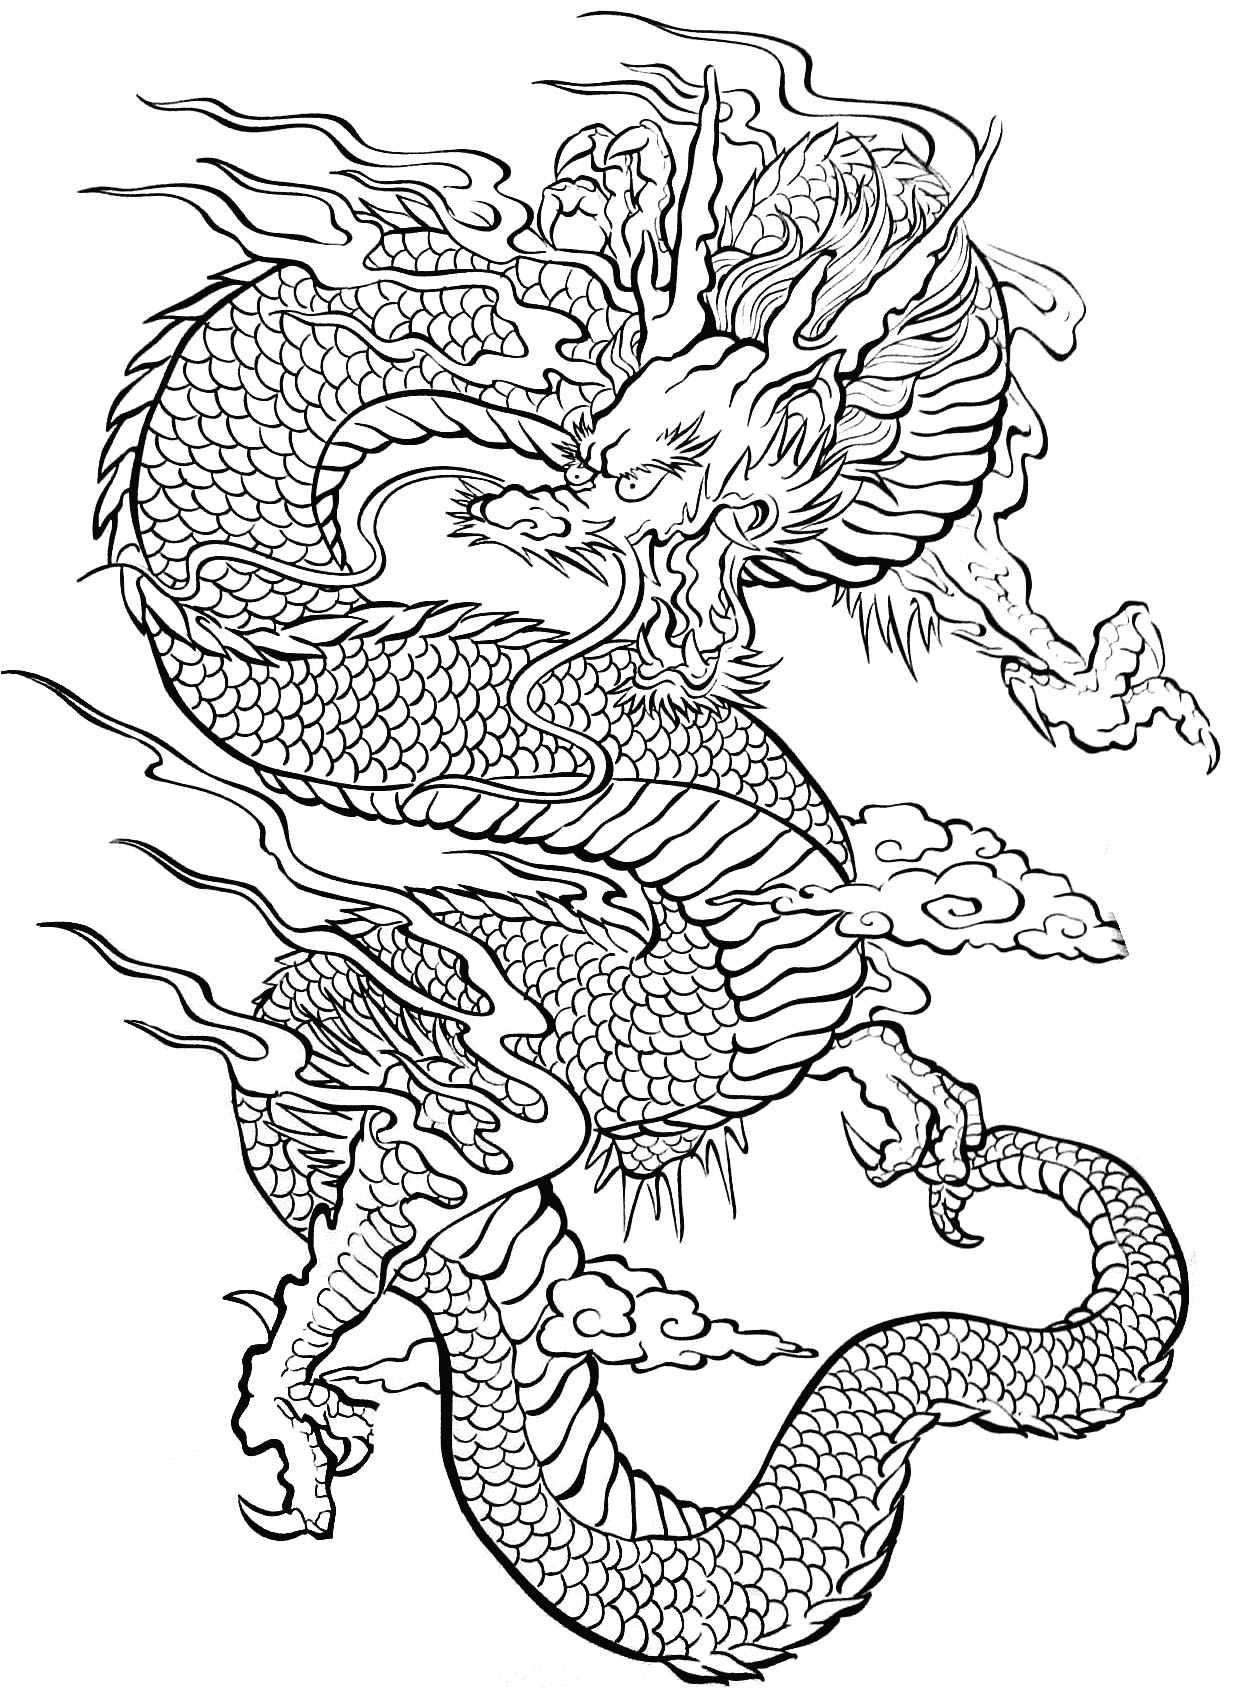 Adult dragon coloring pages sex picture